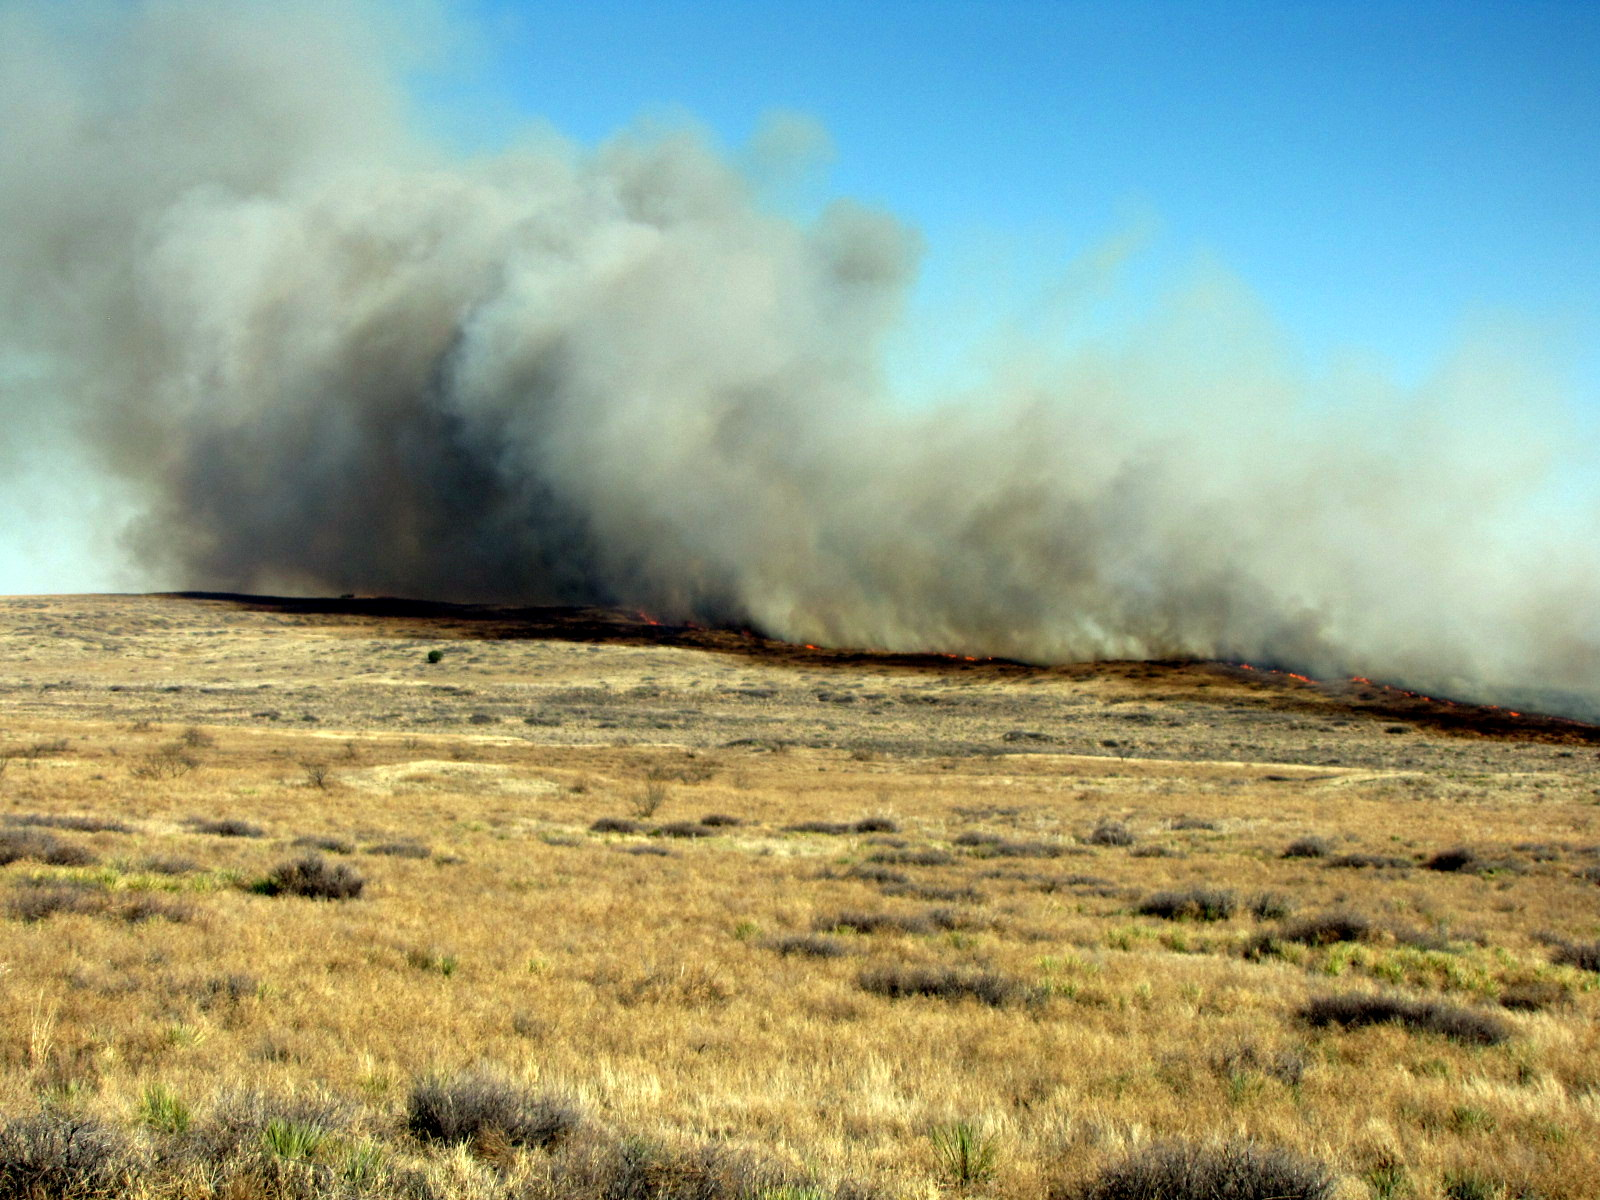 <p>With the Texas winter wildfire season upon us, officials at Texas A&M Forest Service are responding to an increase in wildfire frequency across the state. Yesterday, two Single Engine Air Tankers (SEATS) responding to a wildfire in Erath County were grounded due to the presence of a drone in the wildfire perimeter.</p>